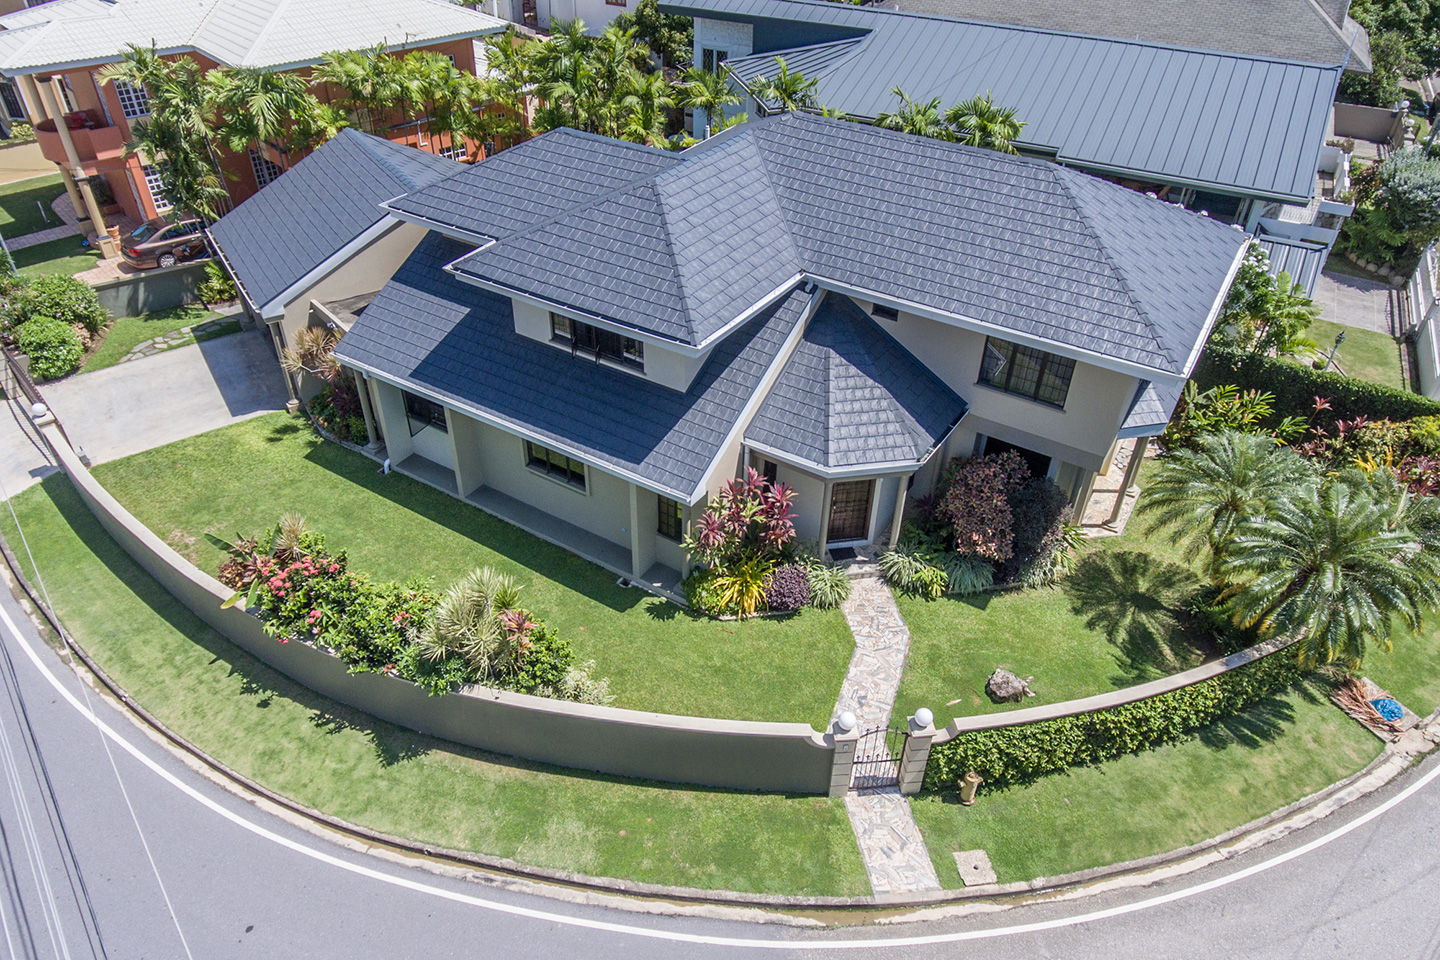 Roof Systems – Trinidad and Tobago on flat house in guyana, flat house design inside, flat house plans, flat house designs in florida, flat house with garage, flat houses in london,